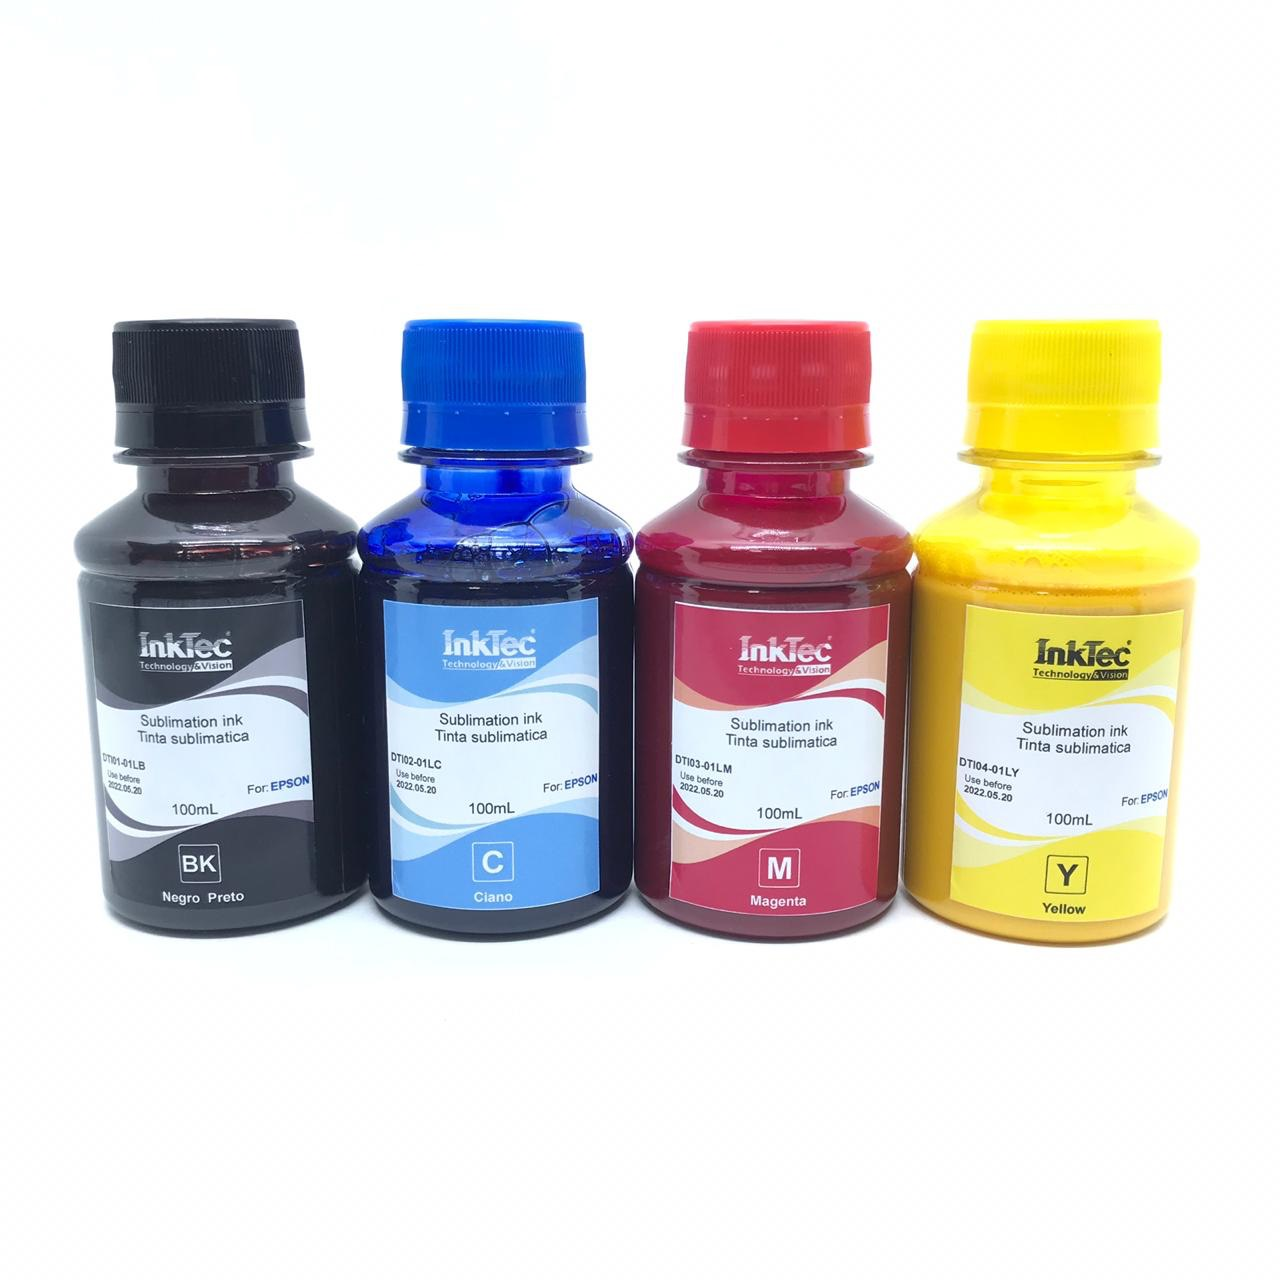 Kit Tinta Sublimática 400 ml Inktec + Papel Sublimatico A4 100 Folhas